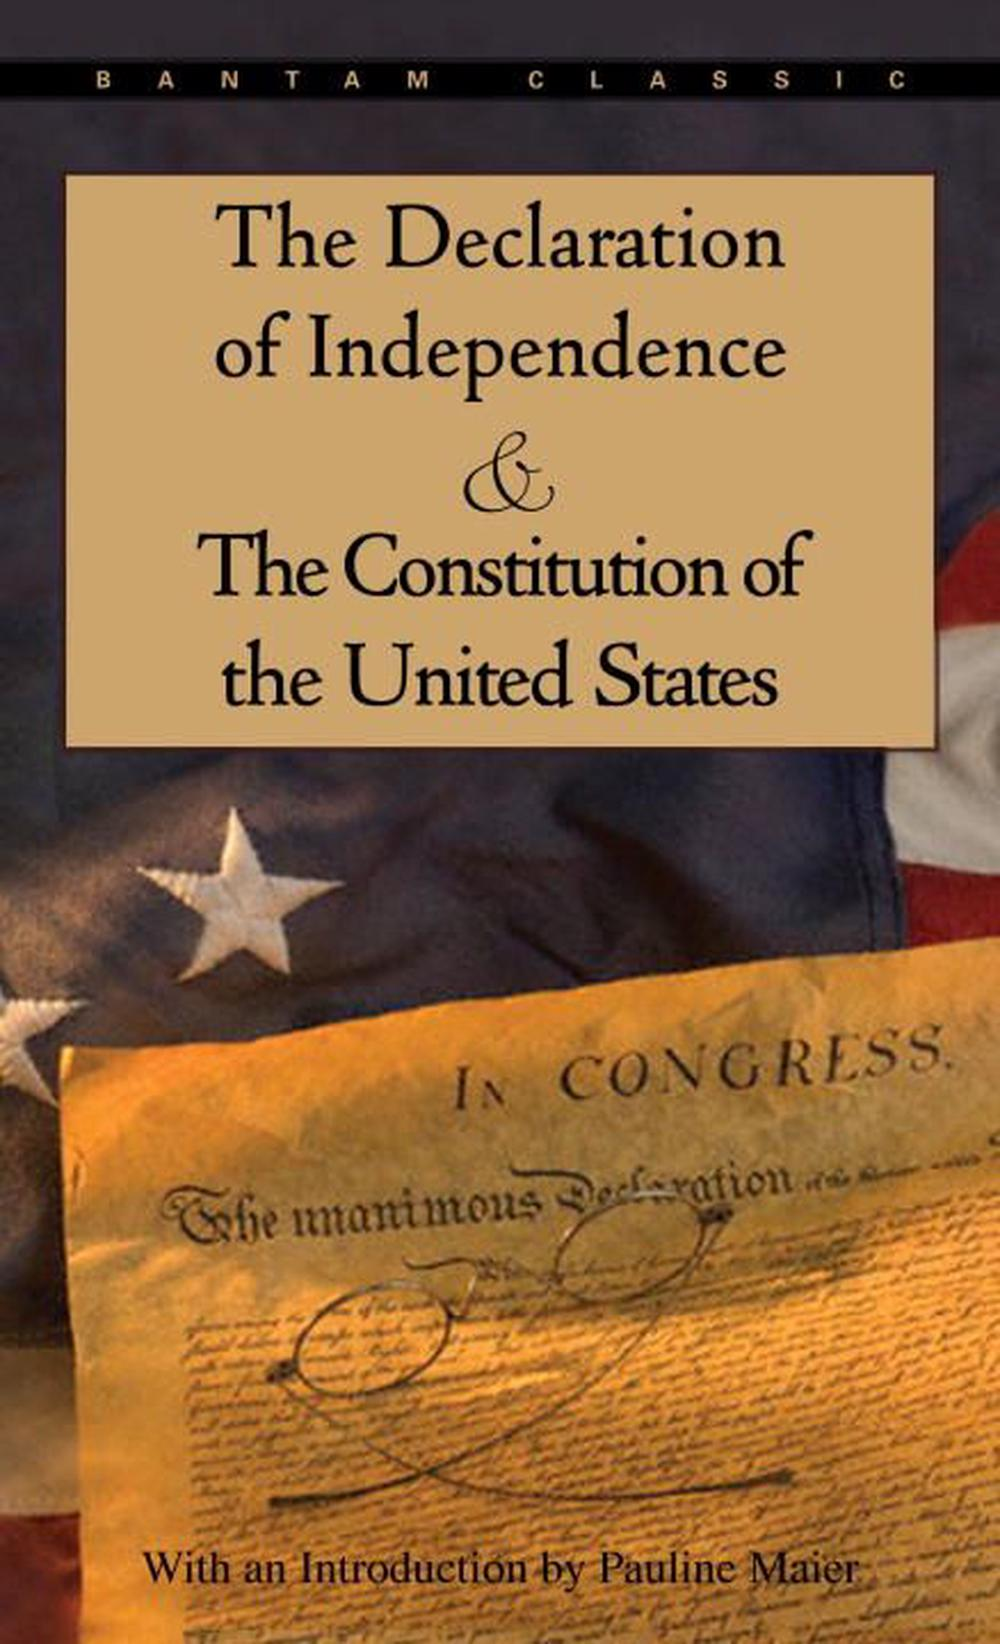 an introduction to the history of the united states constitution The guide tribal nations and the united states: an introduction developed by the national congress of american indians seeks to provide a basic overview of the history and underlying principles of tribal governance.